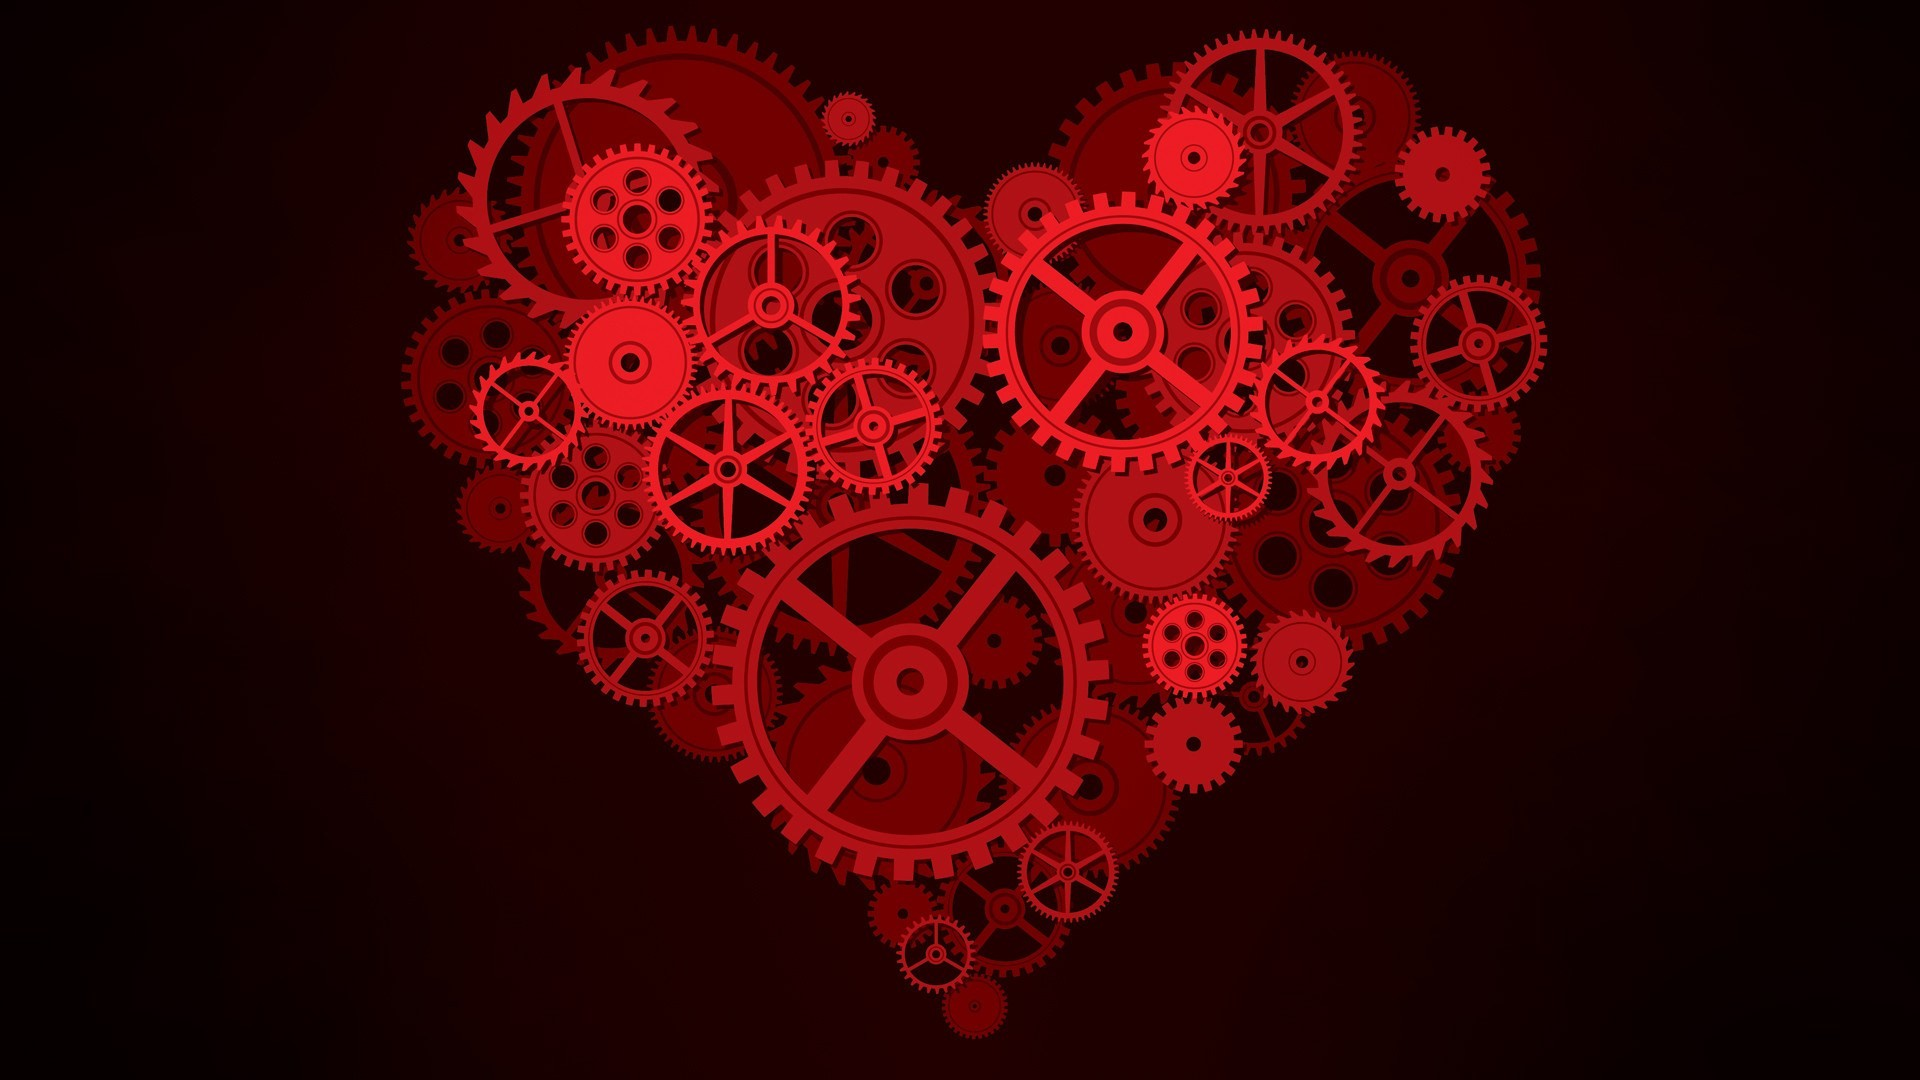 Black And Red Heart Wallpaper 61 Images